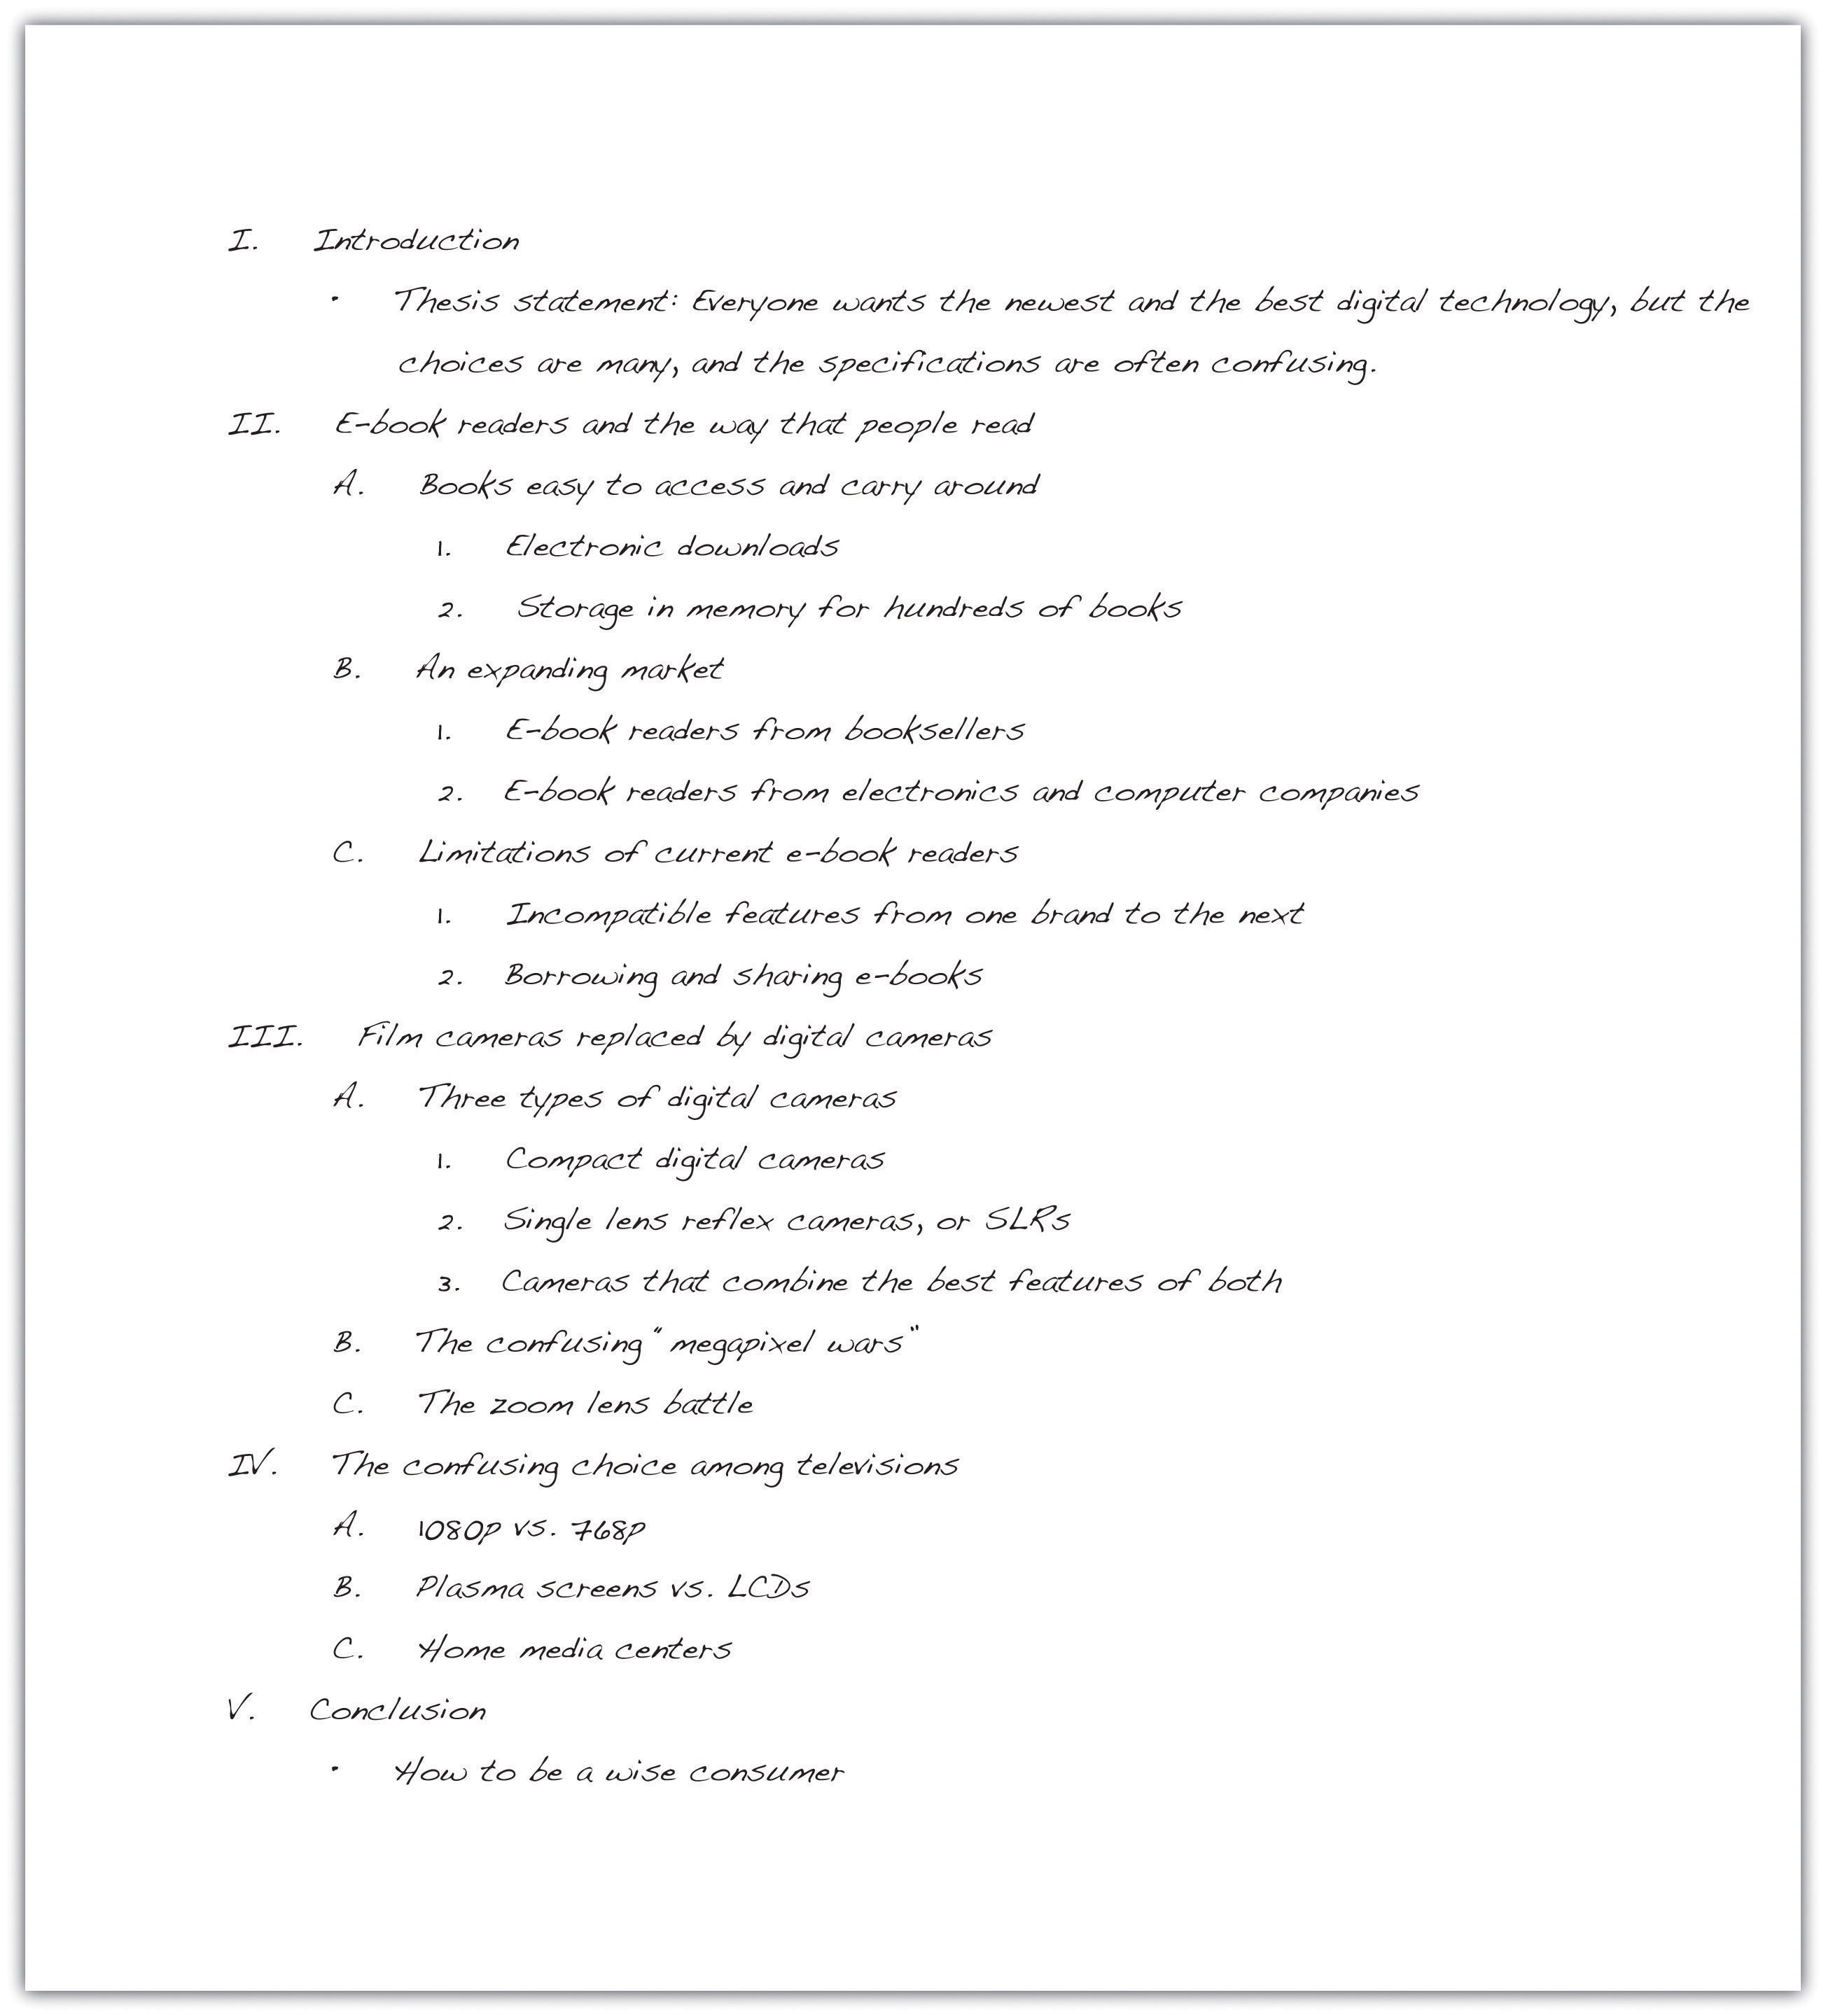 dissertation on stress management dissertation on stress management this bibtex for phd helalinden com dissertation on stress management this bibtex for phd helalinden com